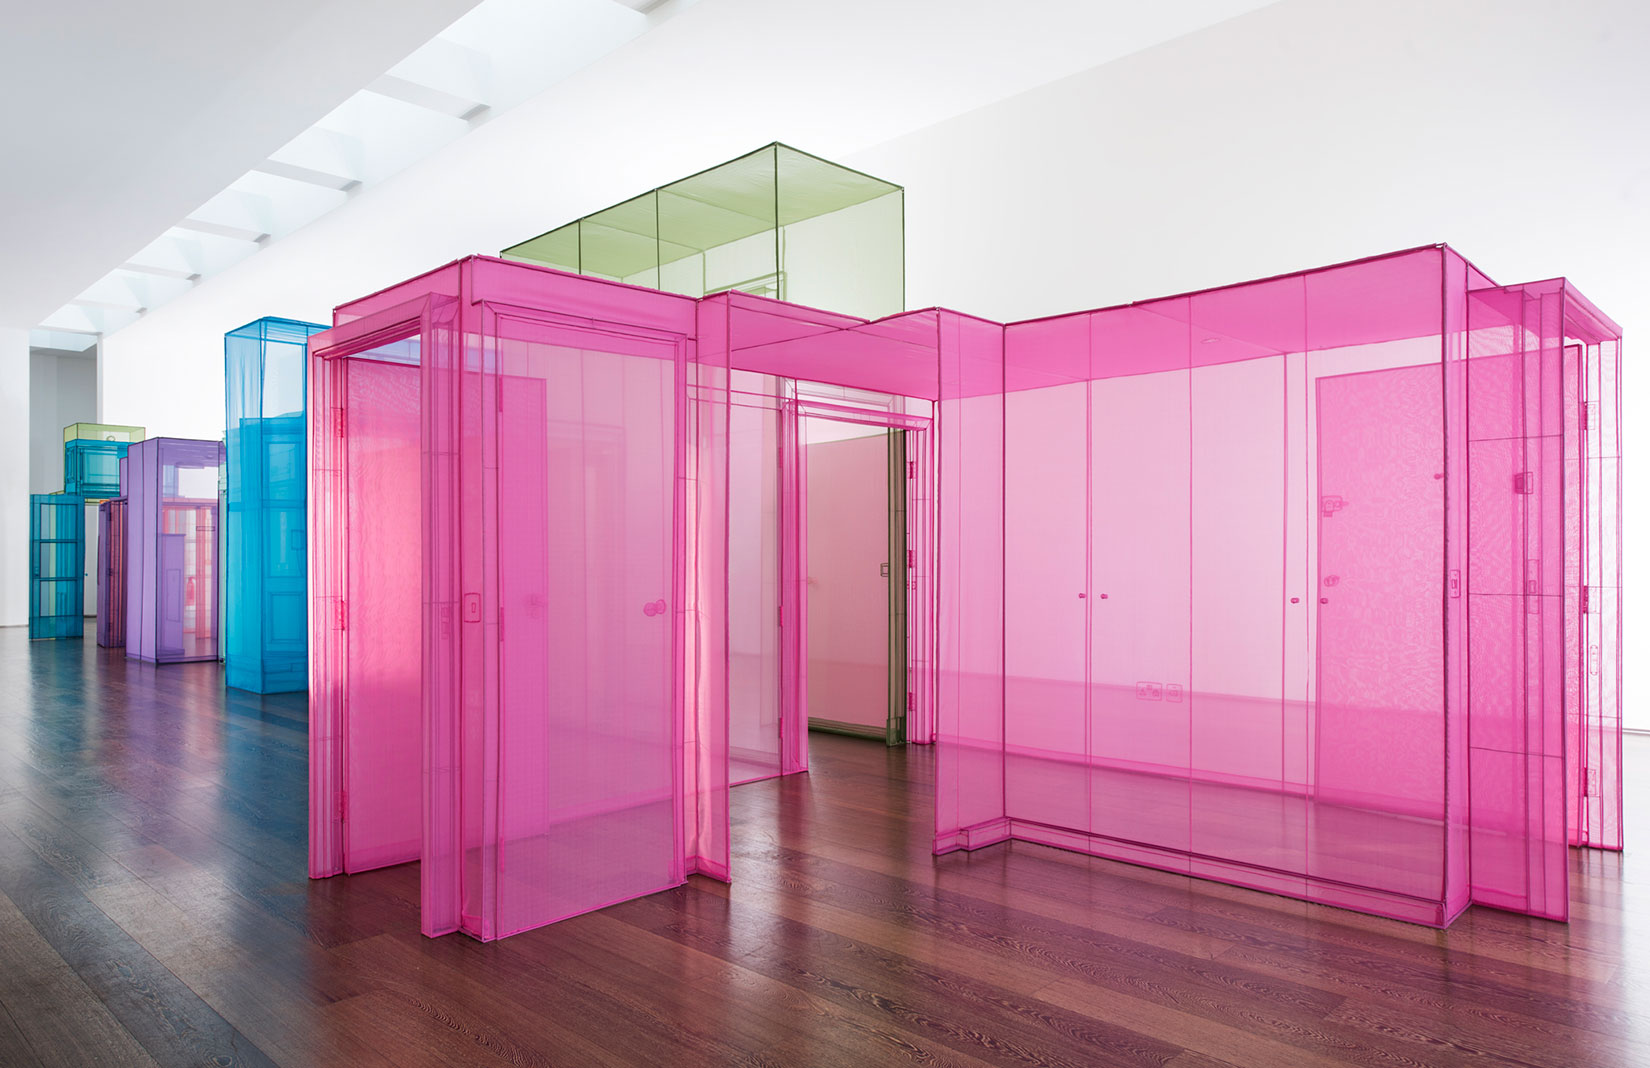 Do Ho Suh artworks